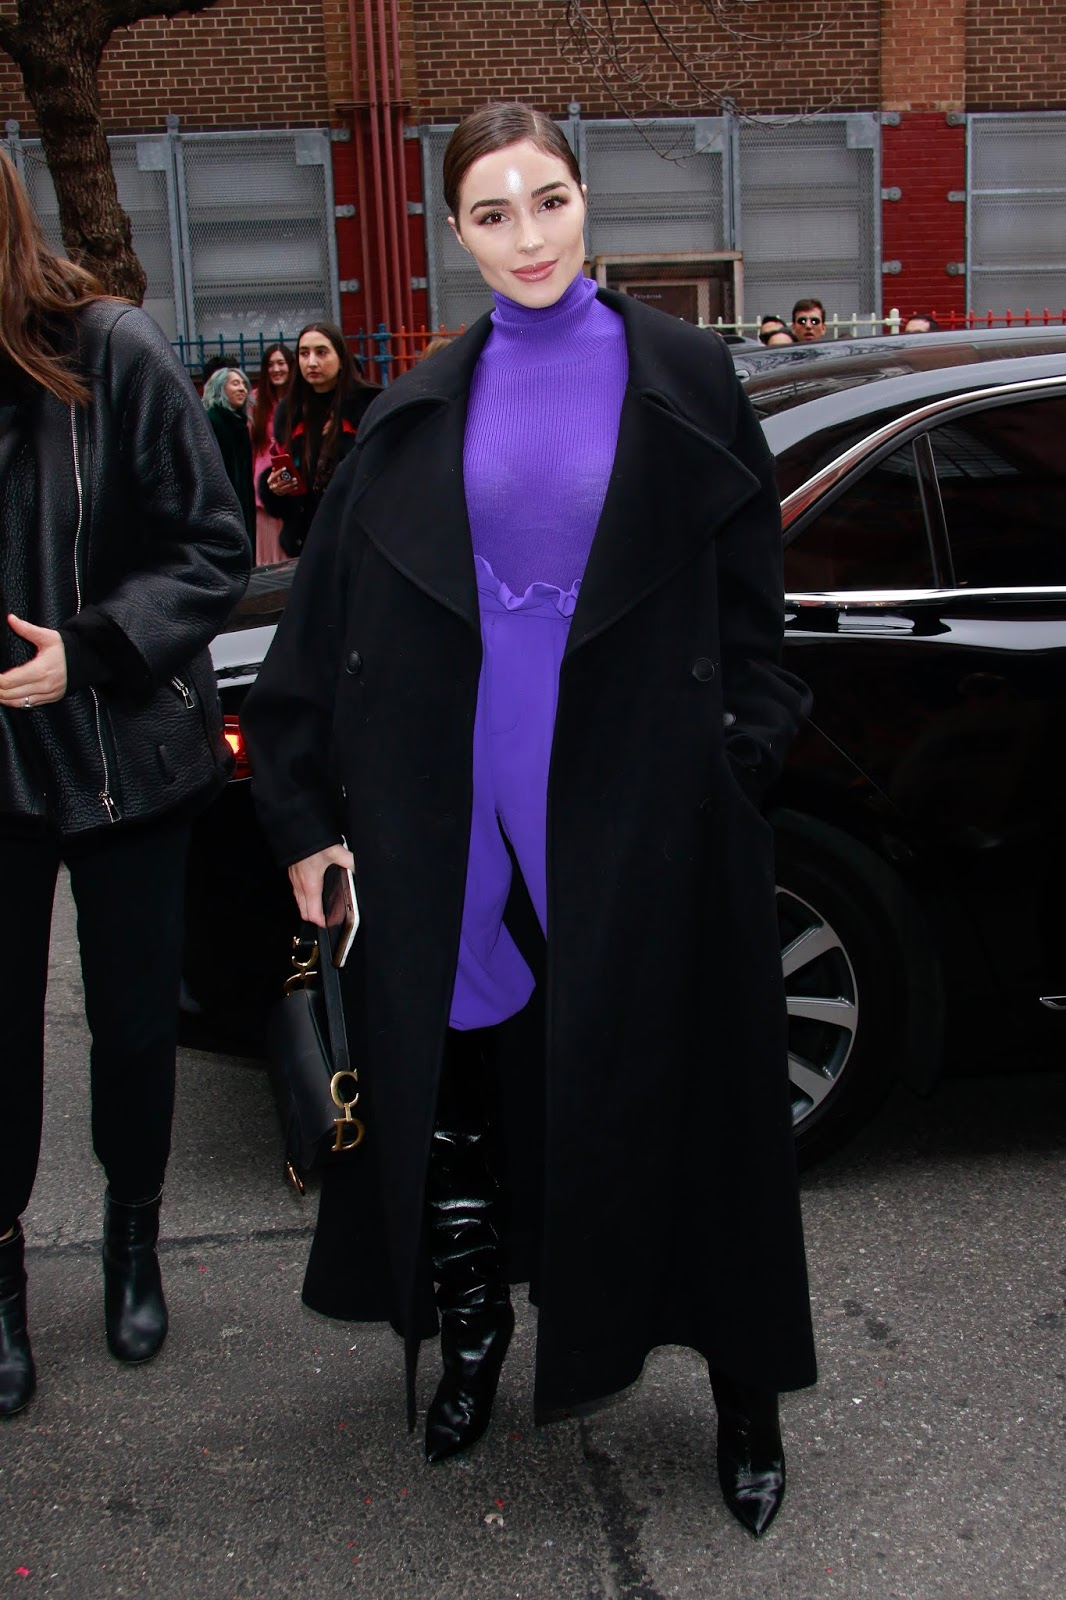 Olivia Culpo - Outside during NYFW in NYC - 02/11/2019